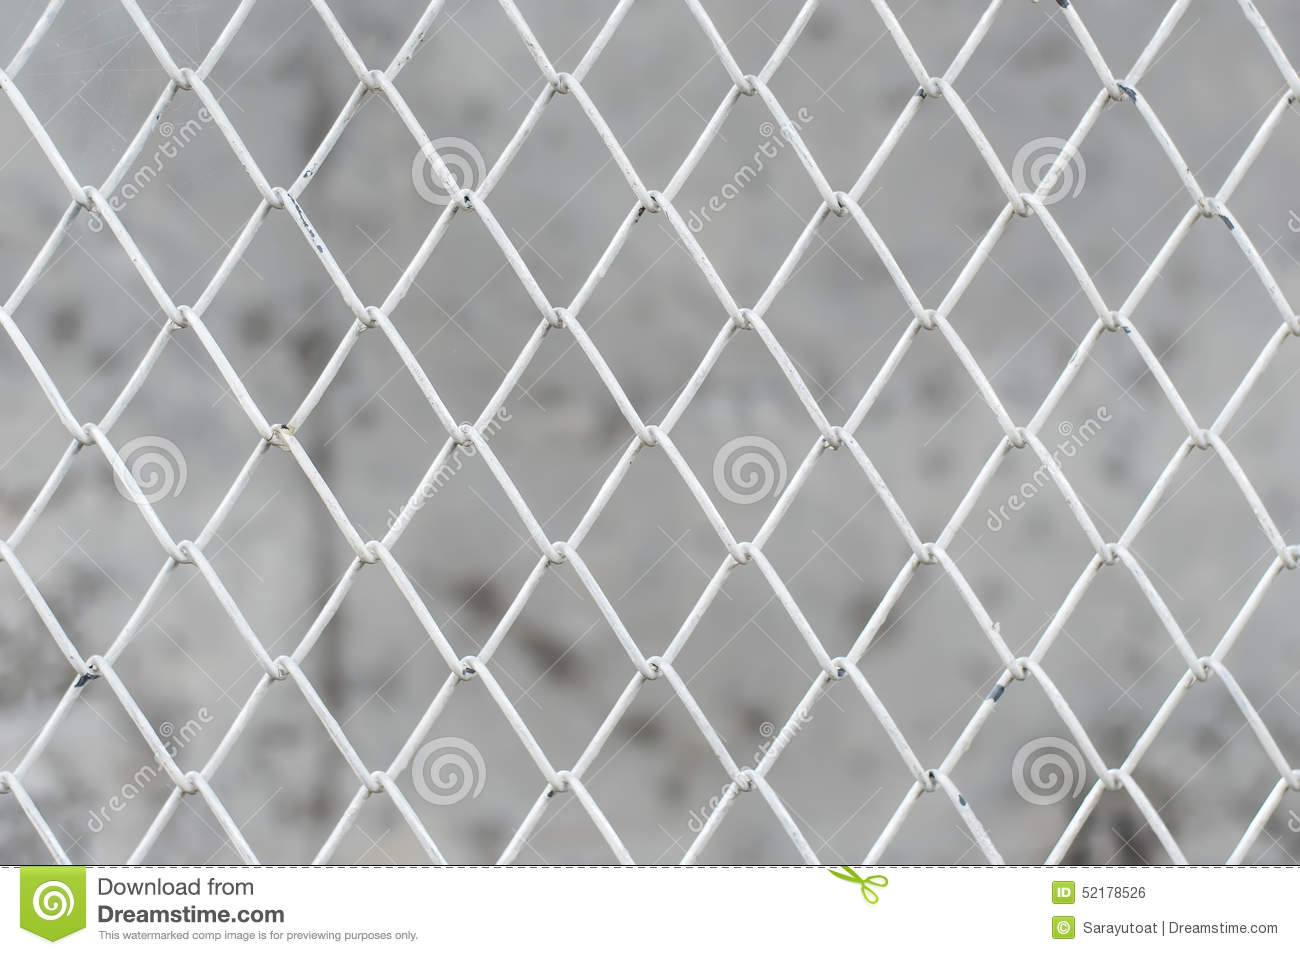 Close-up White Wire Mesh Fence Stock Photo - Image of pattern, hole ...